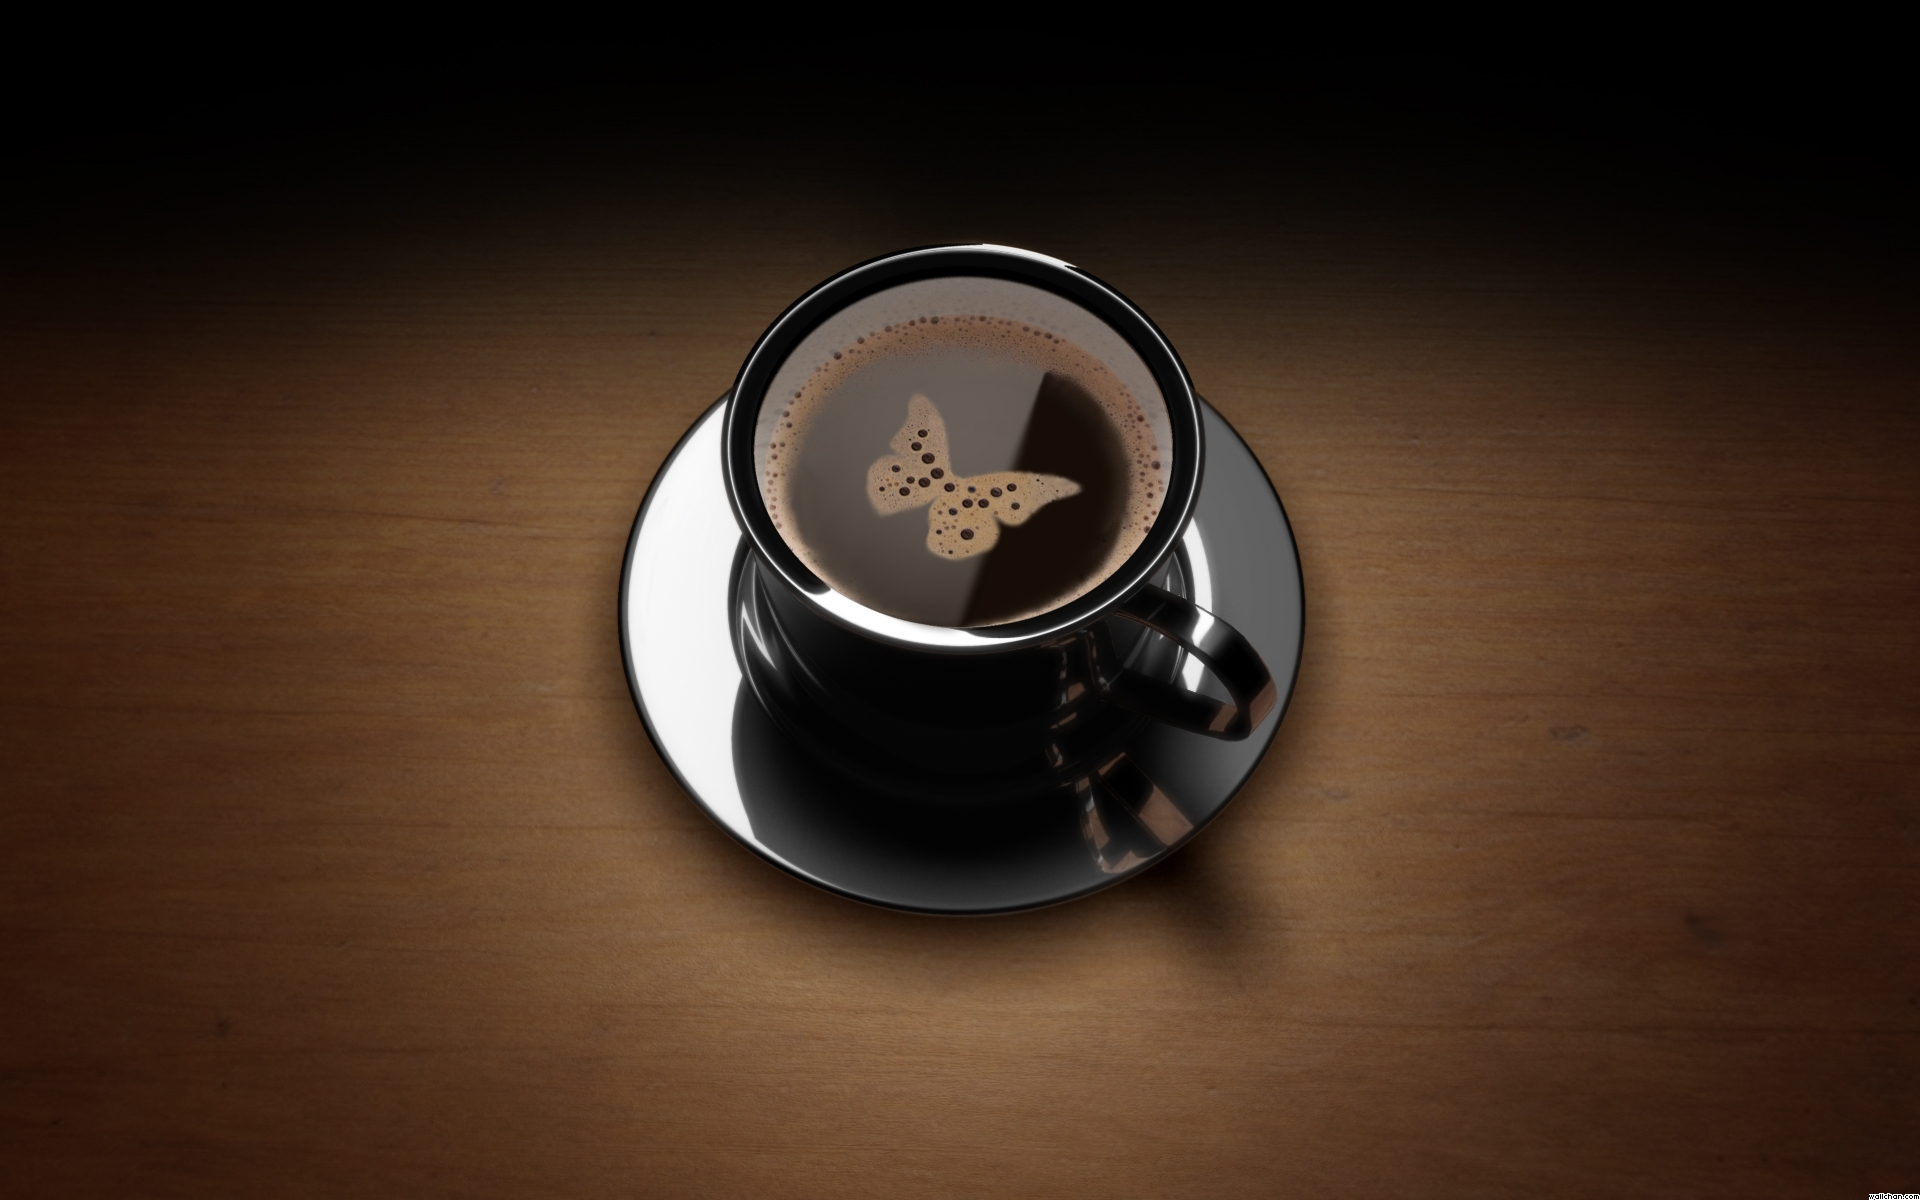 1305885238-butterfly-coffee-wallpaper.jpg